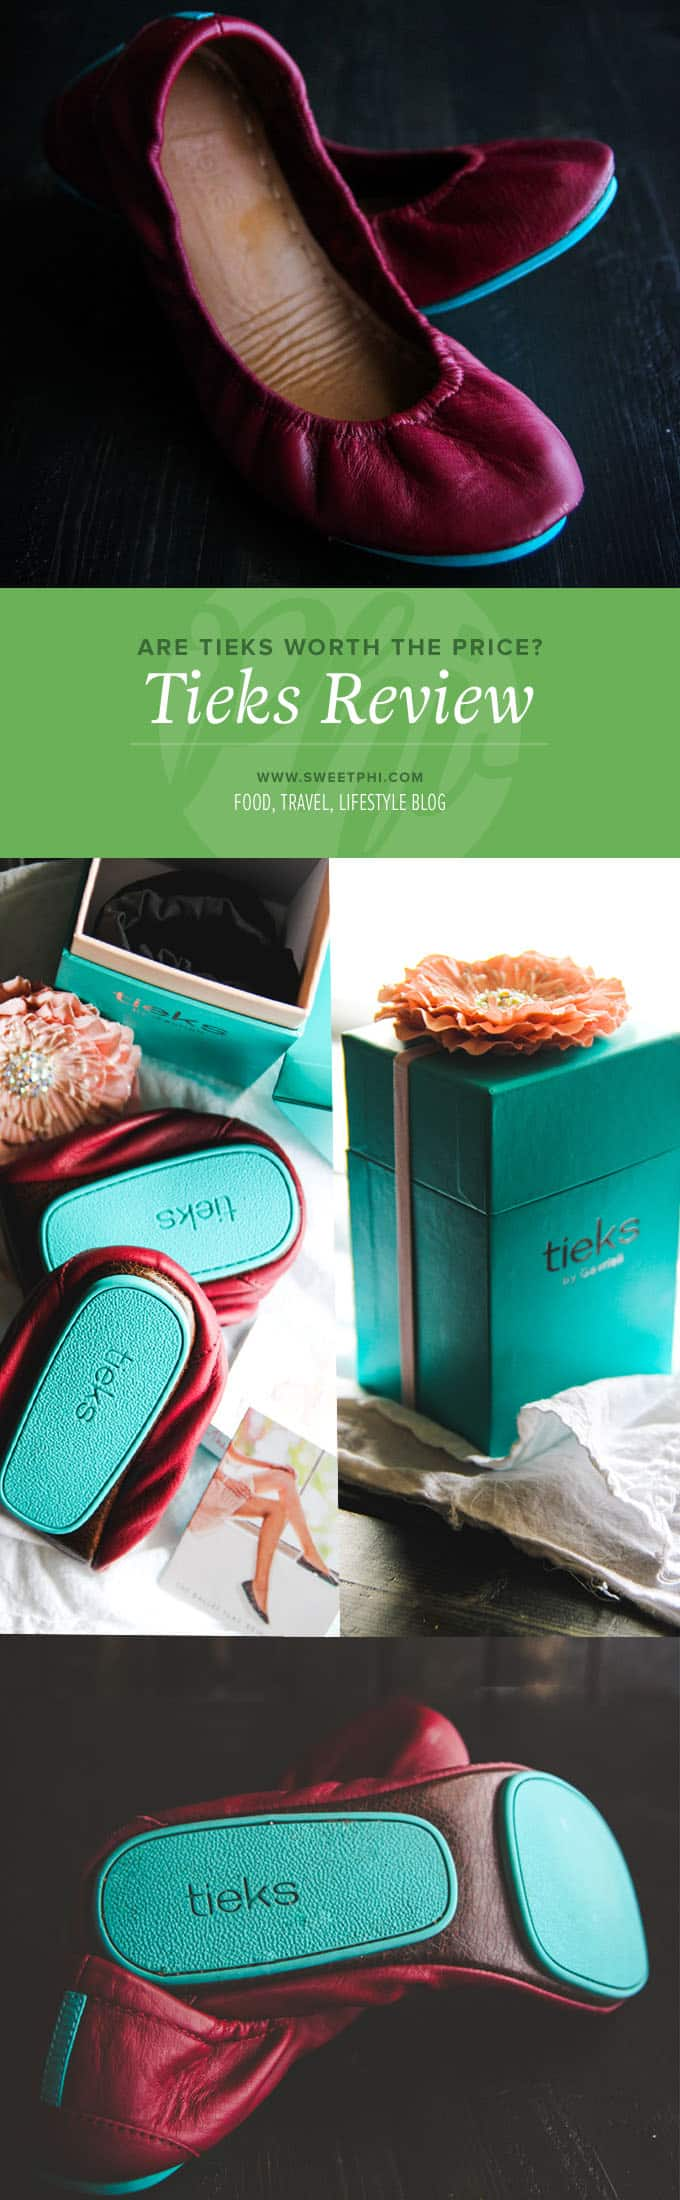 Tieks review from @sweetphi